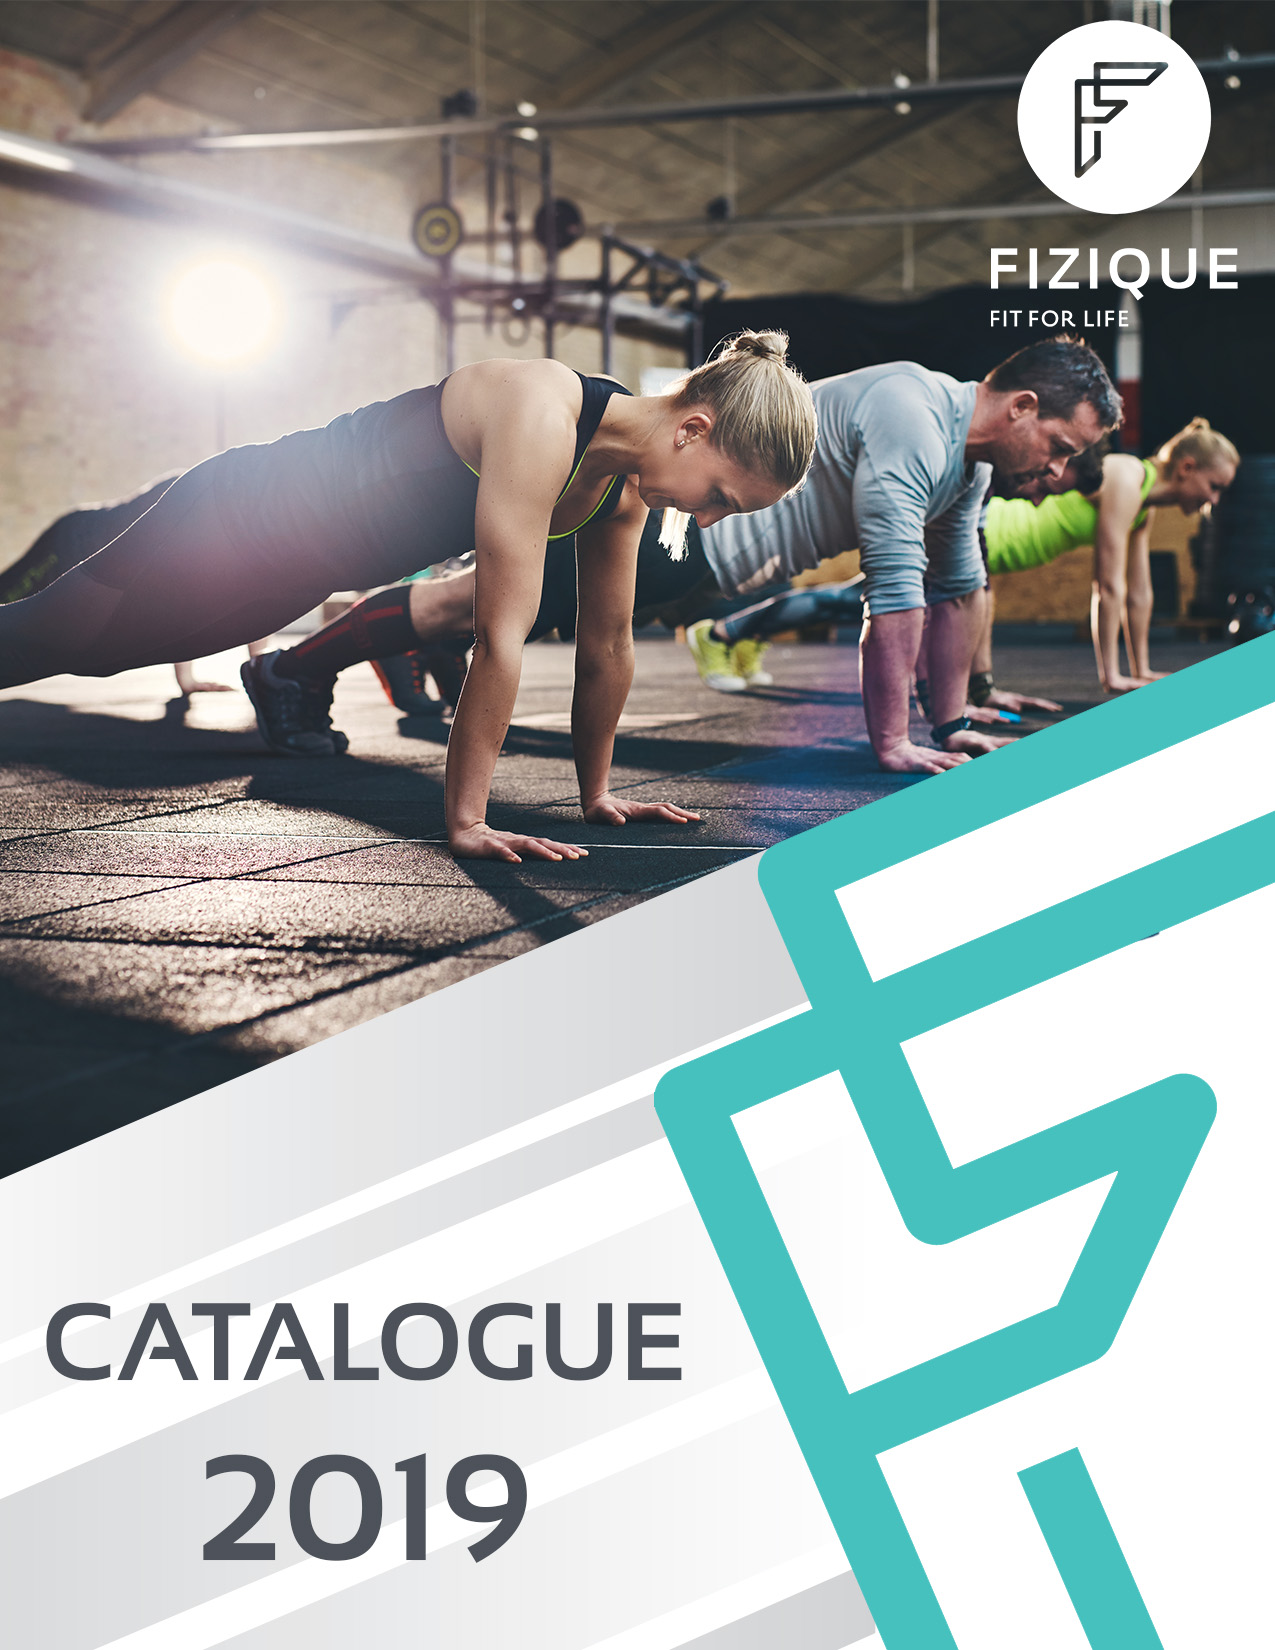 catlogue-2019-cover.jpg